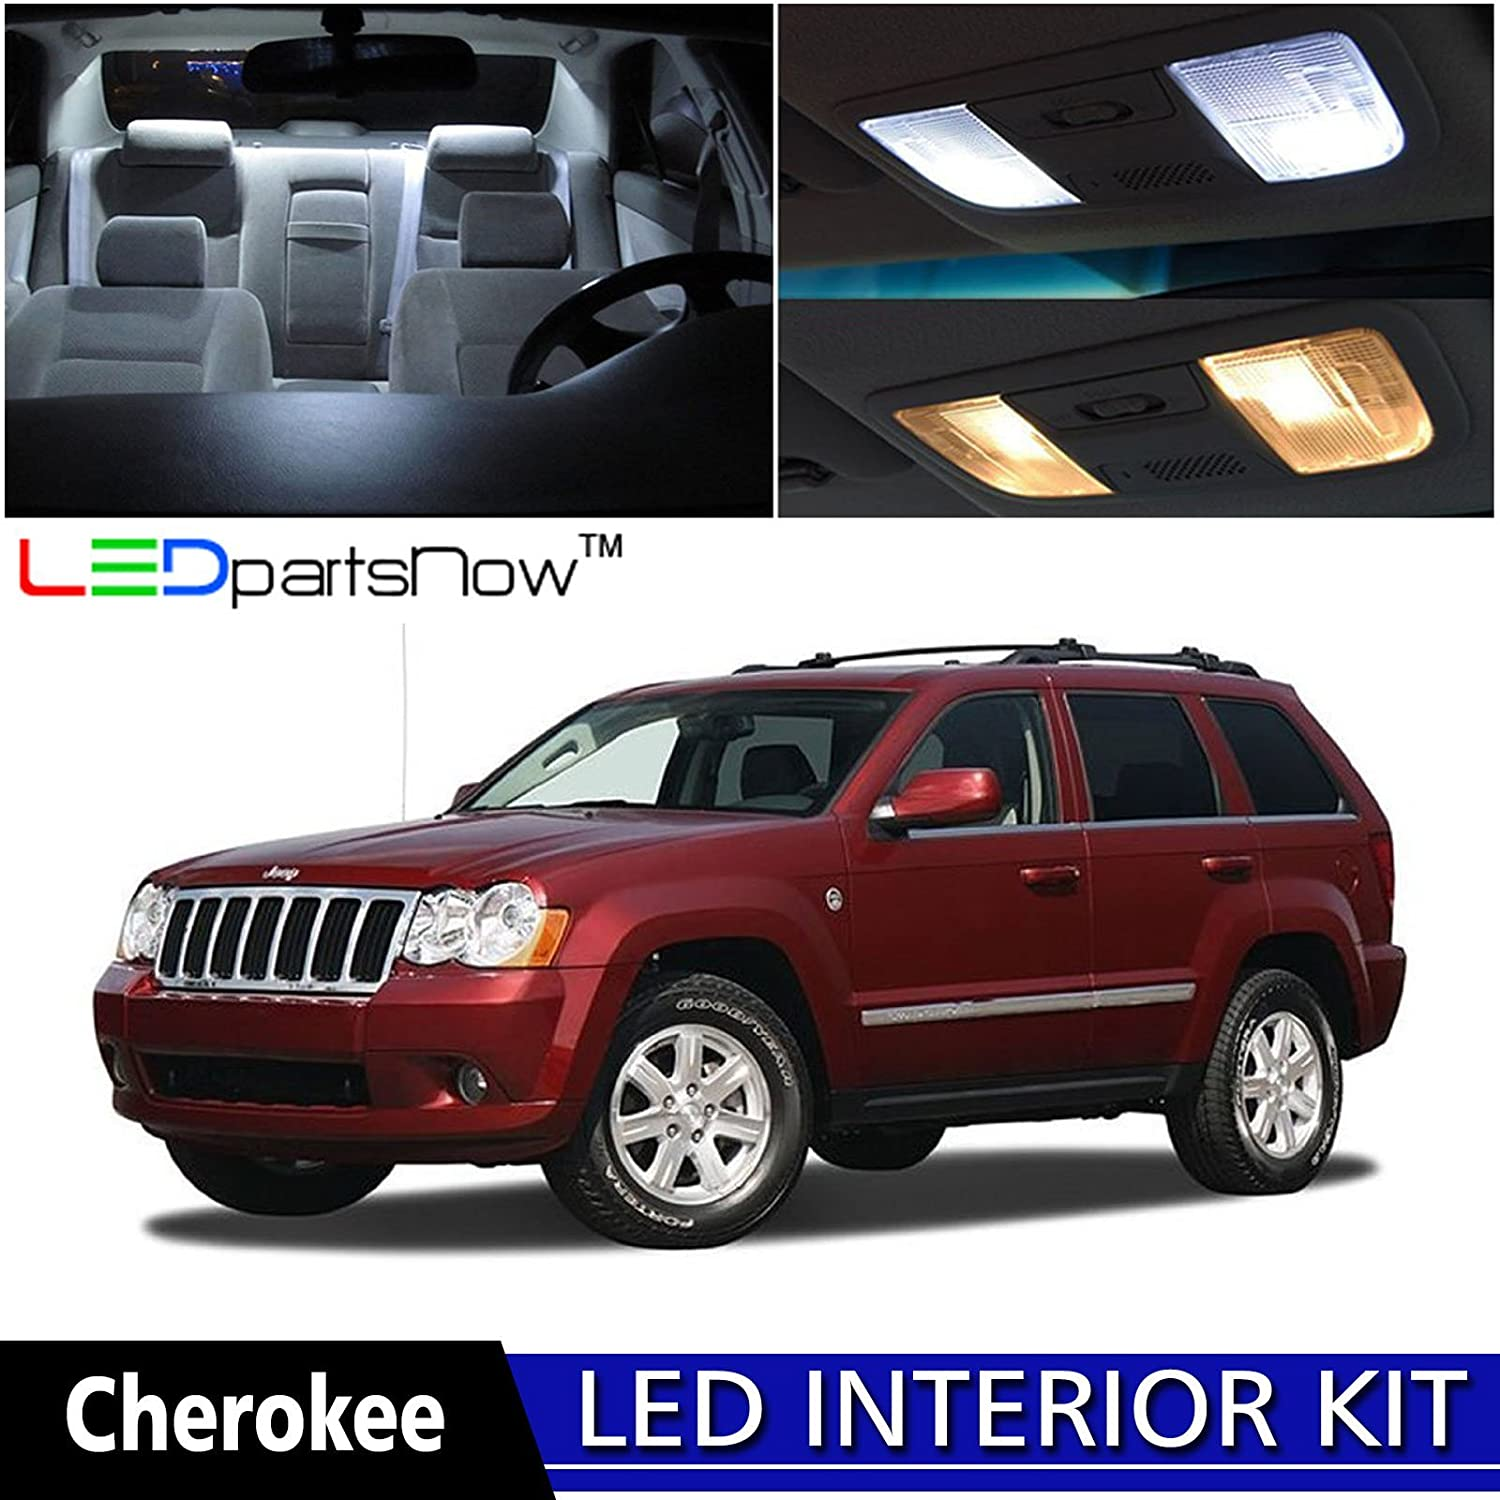 Ledpartsnow 2005 2010 Jeep Grand Cherokee Led Interior Headlight Wiring 2006 Srt8 Lights Accessories Replacement Package Kit 9 Pieces White Automotive